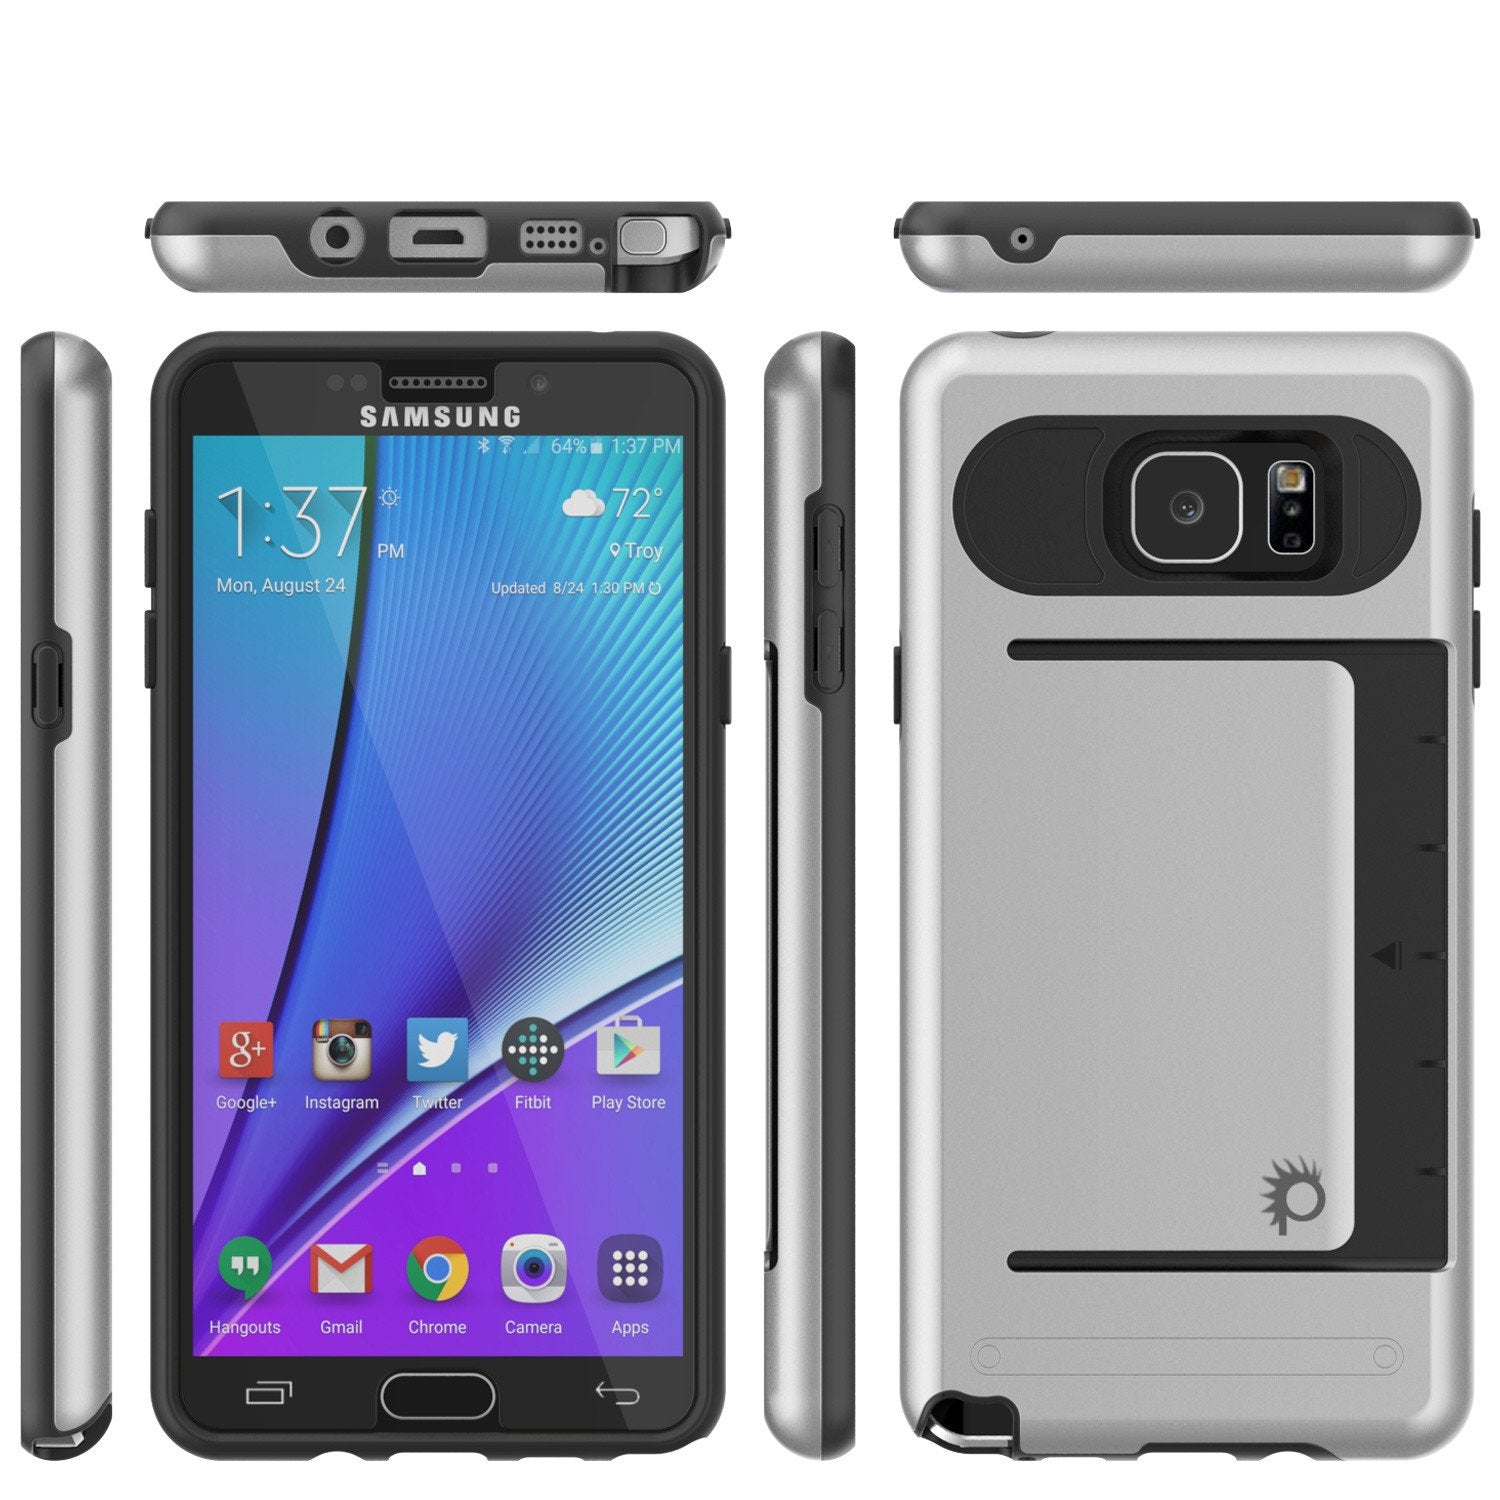 Galaxy Note 5 Case PunkCase CLUTCH Silver Series Slim Armor Soft Cover Case w/ Tempered Glass - PunkCase NZ